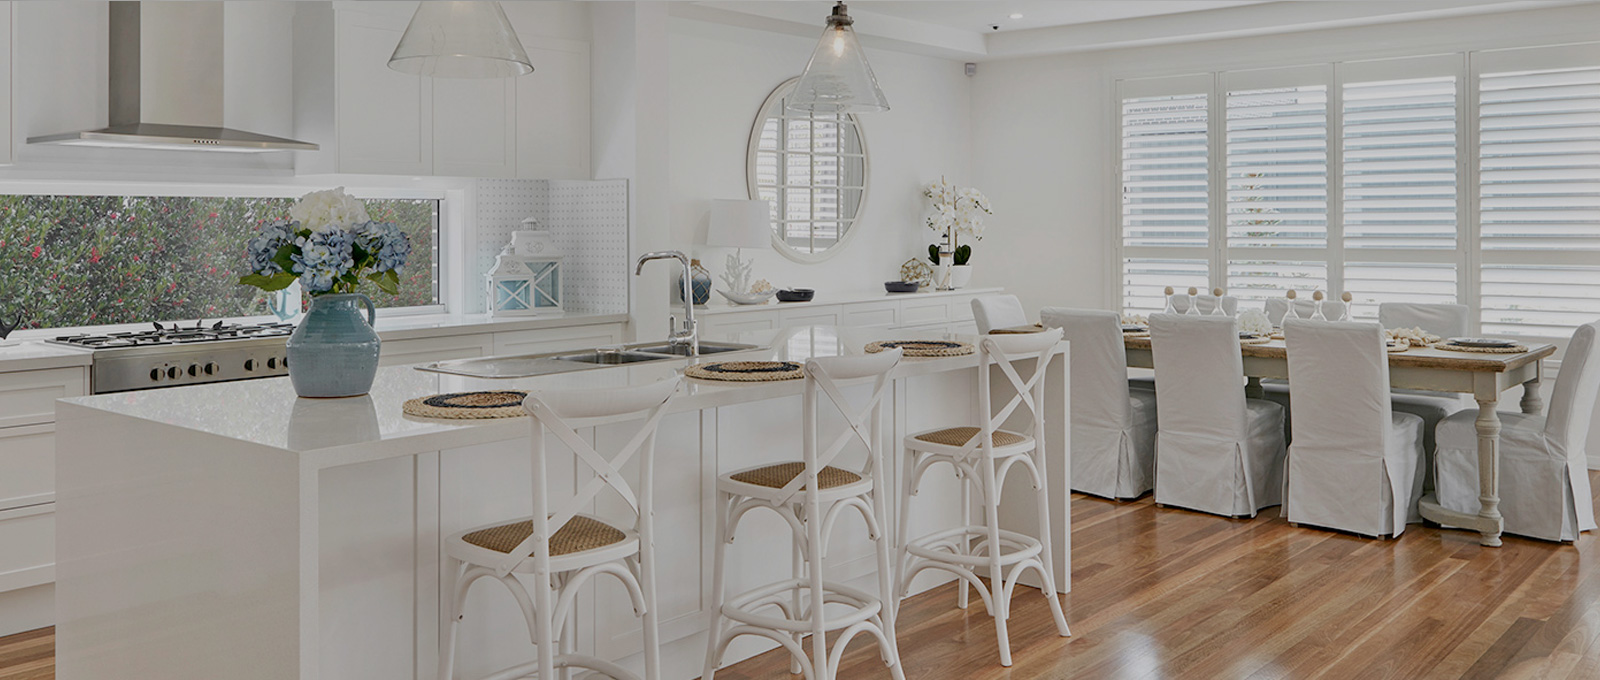 Kitchen area in the modern house with a dining table